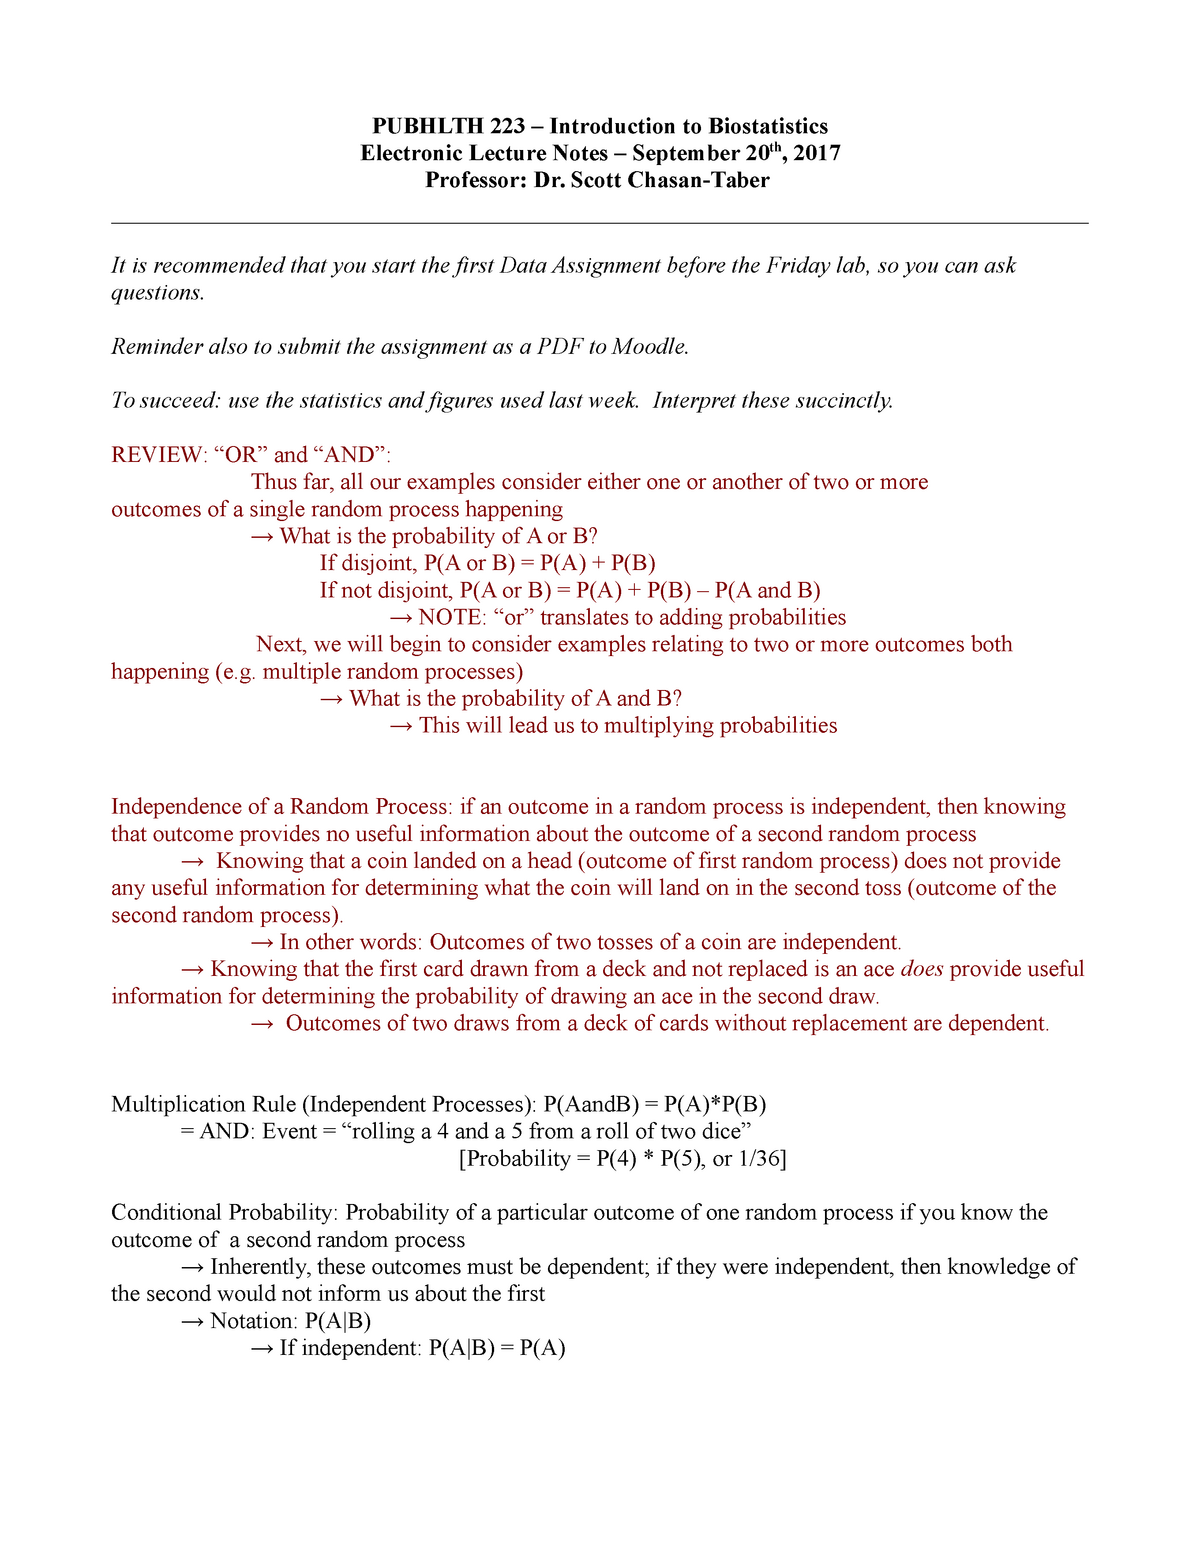 Pubhlth 223 Elec Lec Notes 0920 - PUBHLTH223: Introduction to